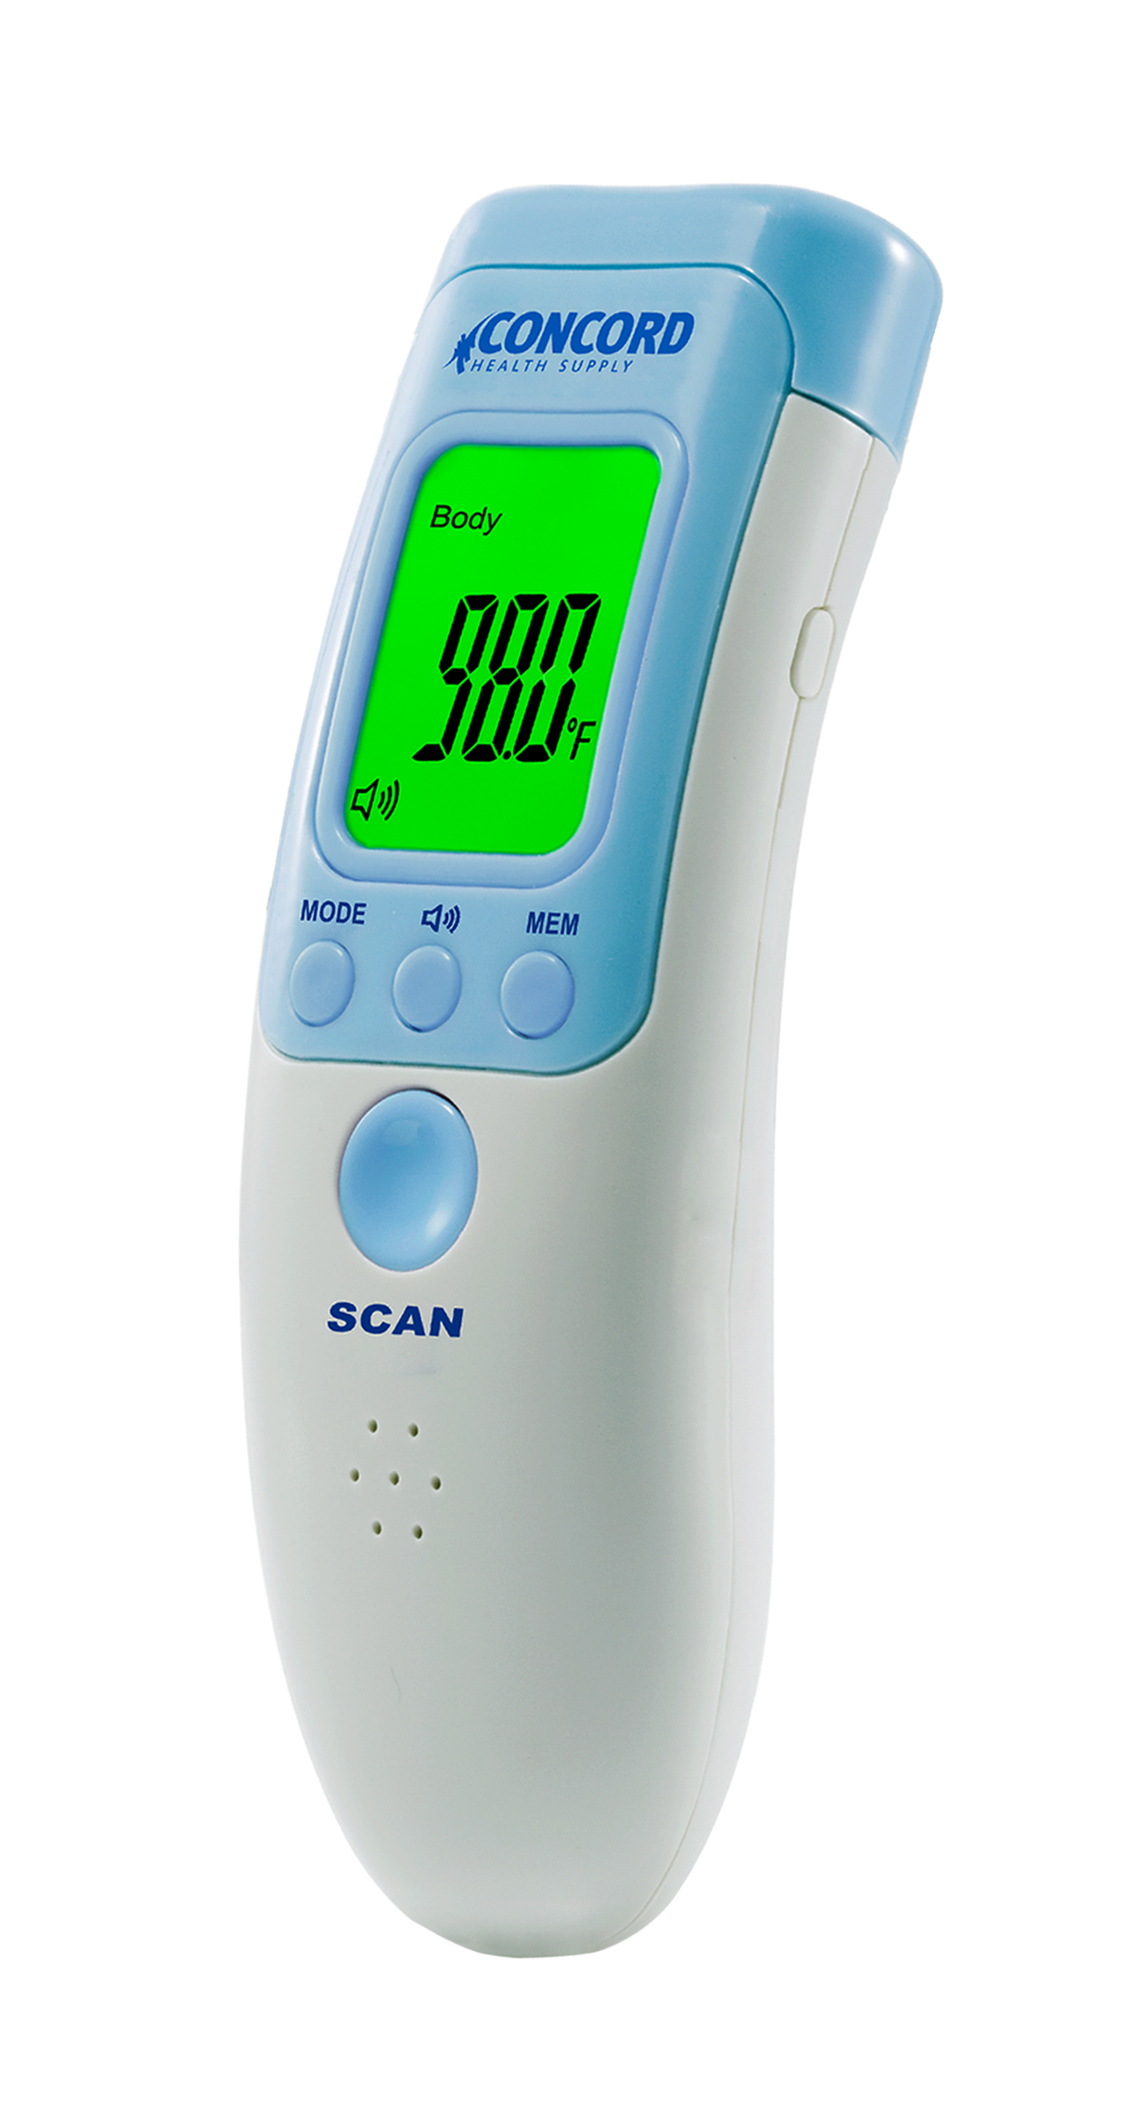 Concord Non-Contact Infrared Thermometer Suitable for Baby, Infants, Toddlers, and Adults by Concord Health Supply